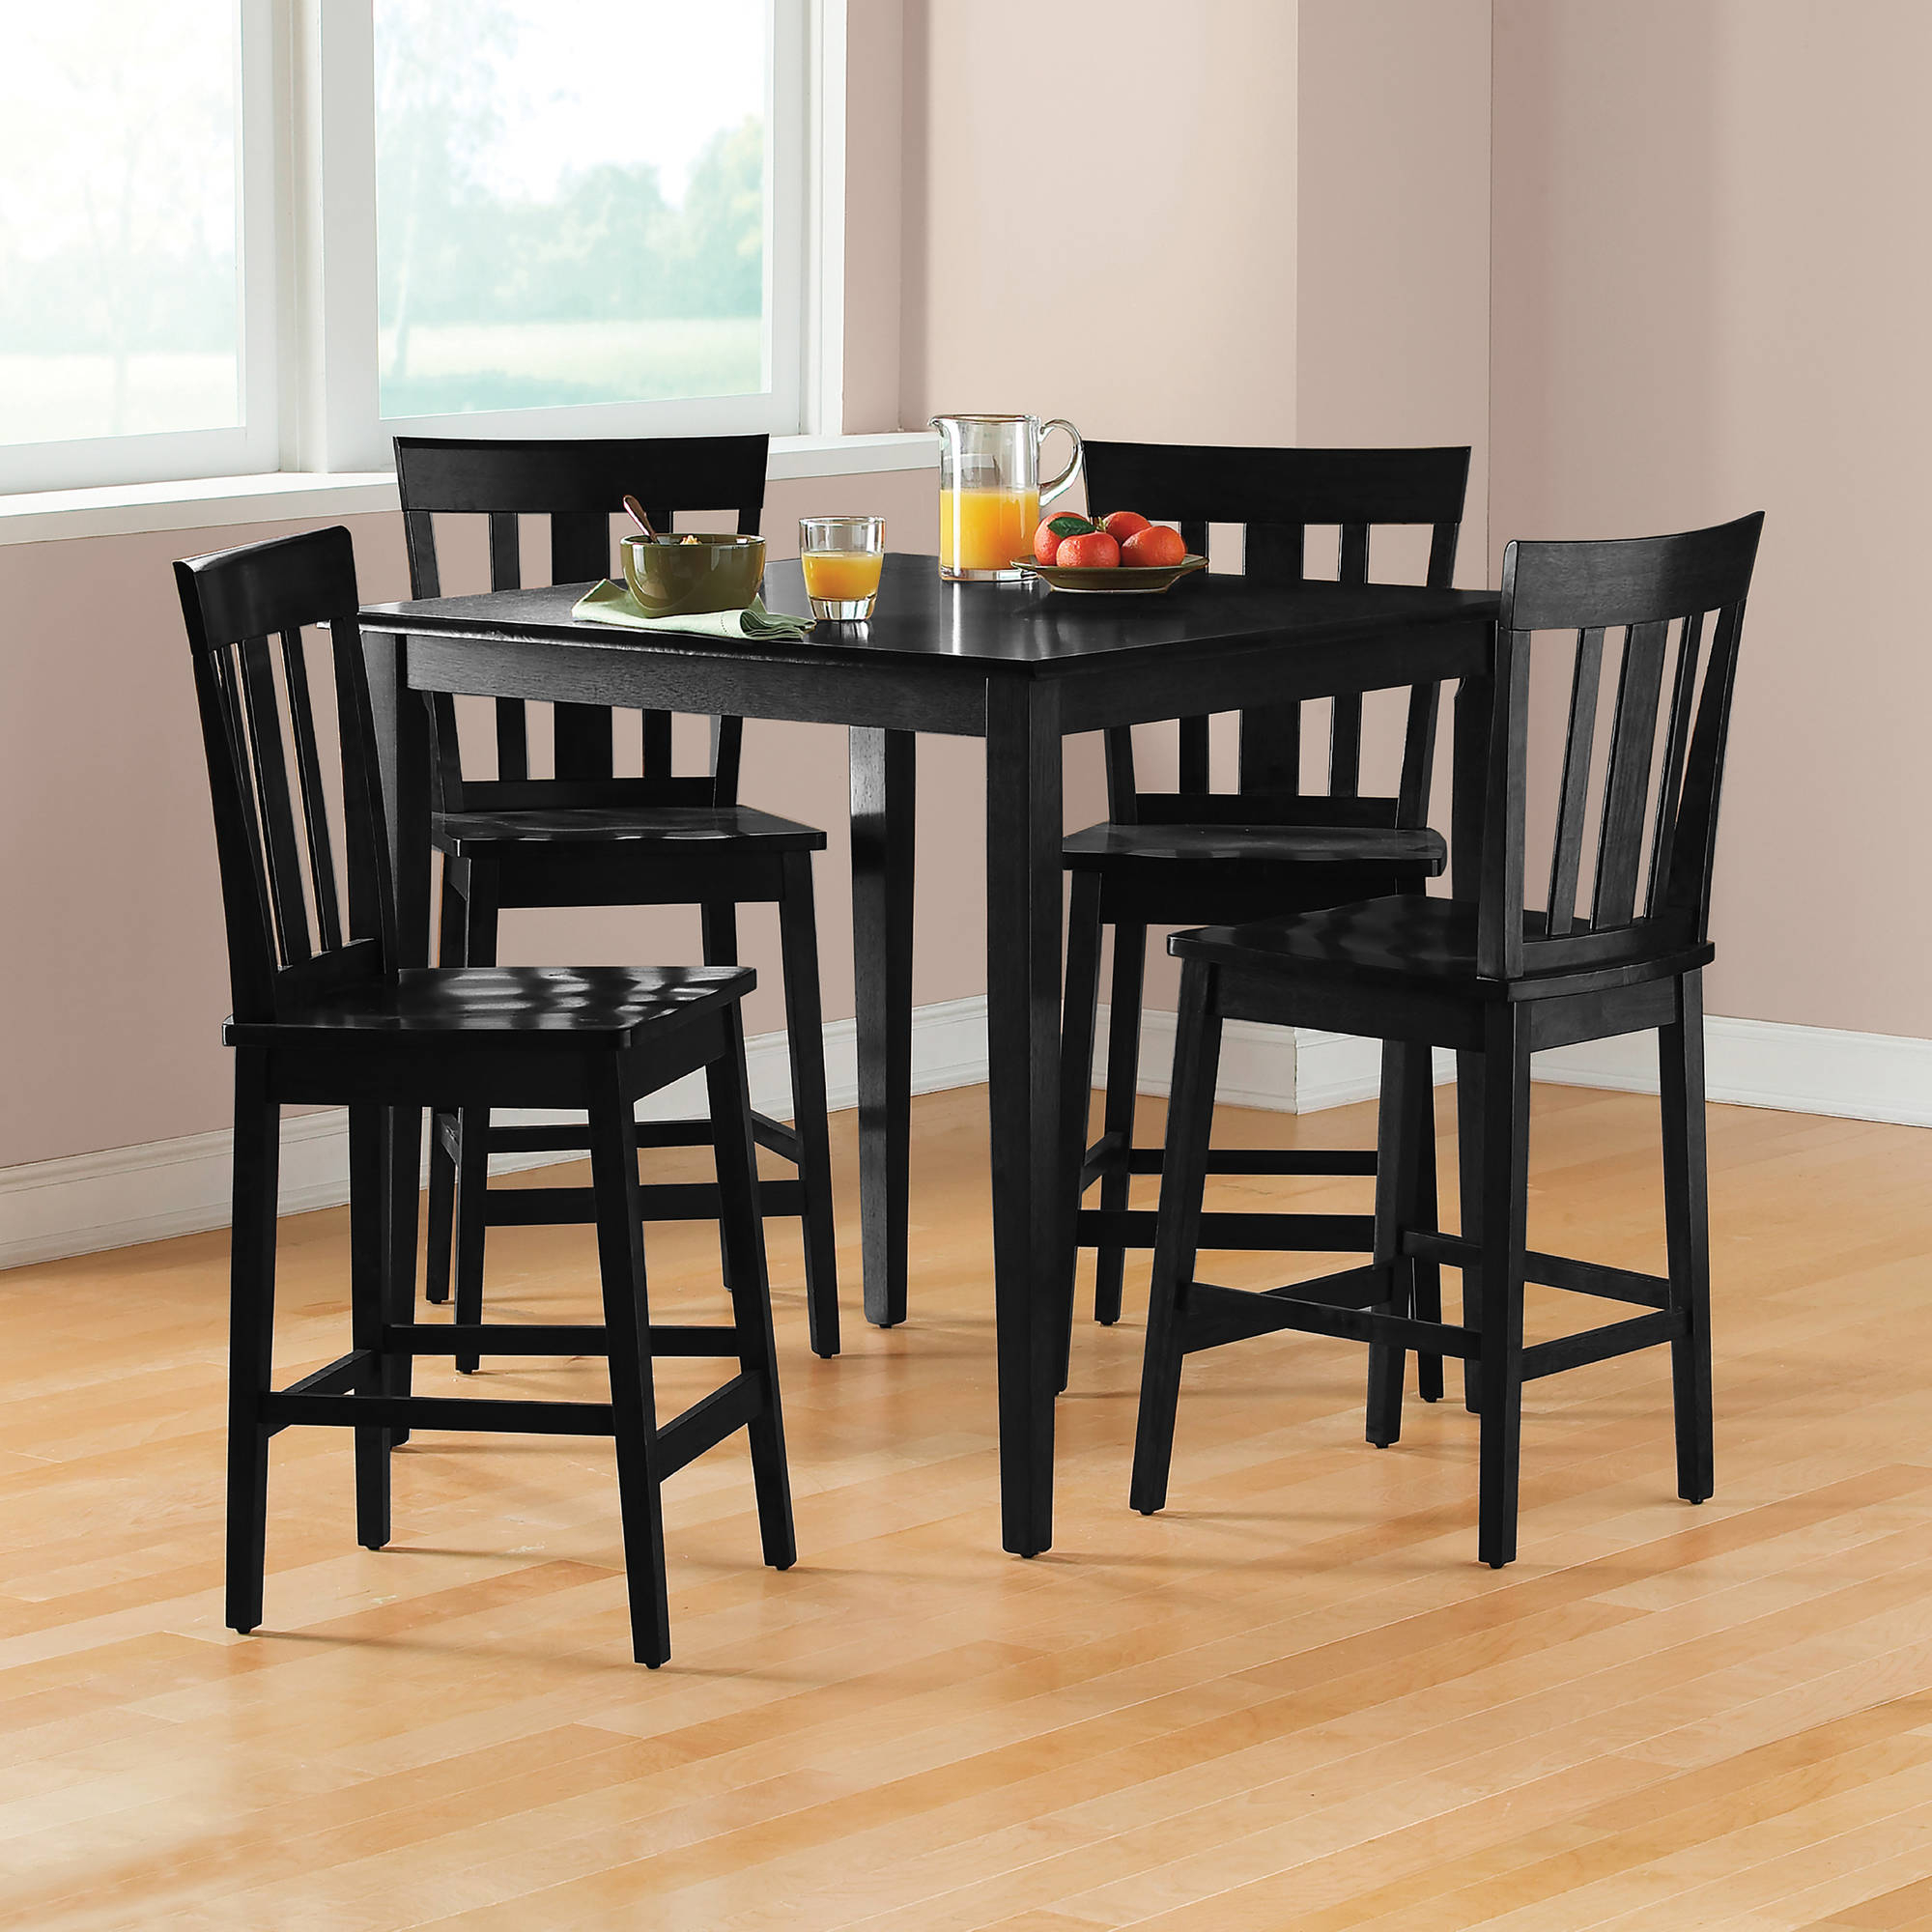 Target Marketing Systems 3 Piece Breakfast Nook Dining Set – Walmart Regarding Preferred Crownover 3 Piece Bar Table Sets (#15 of 20)